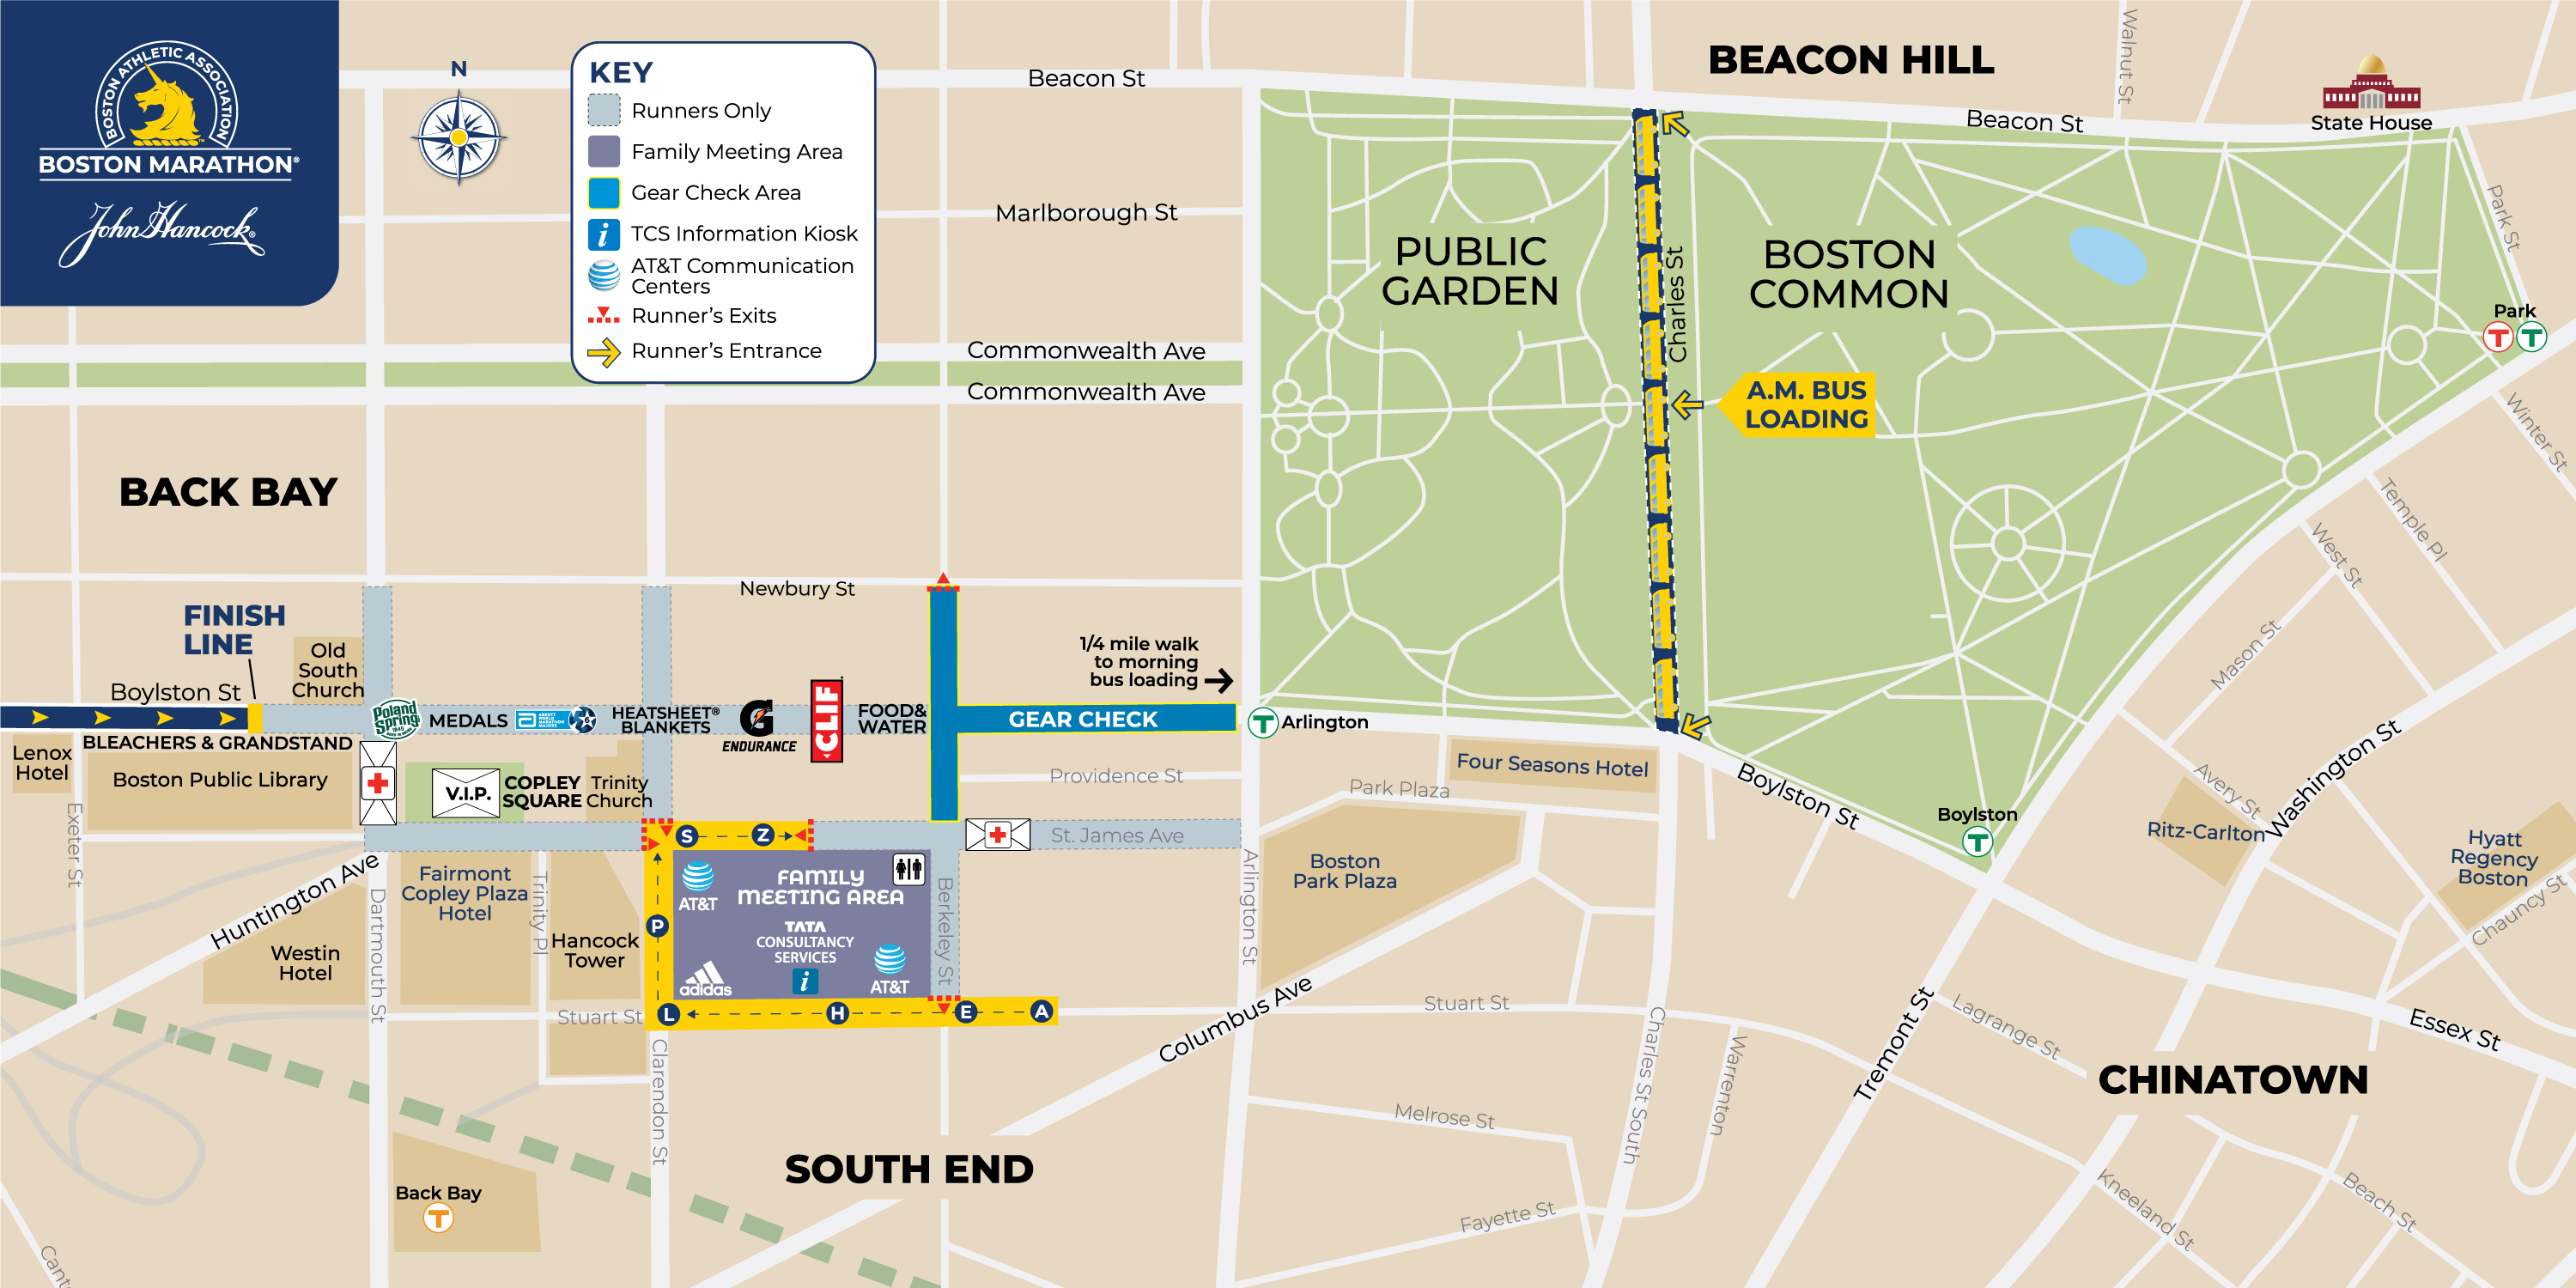 2020 Boston Marathon Finish Area Map